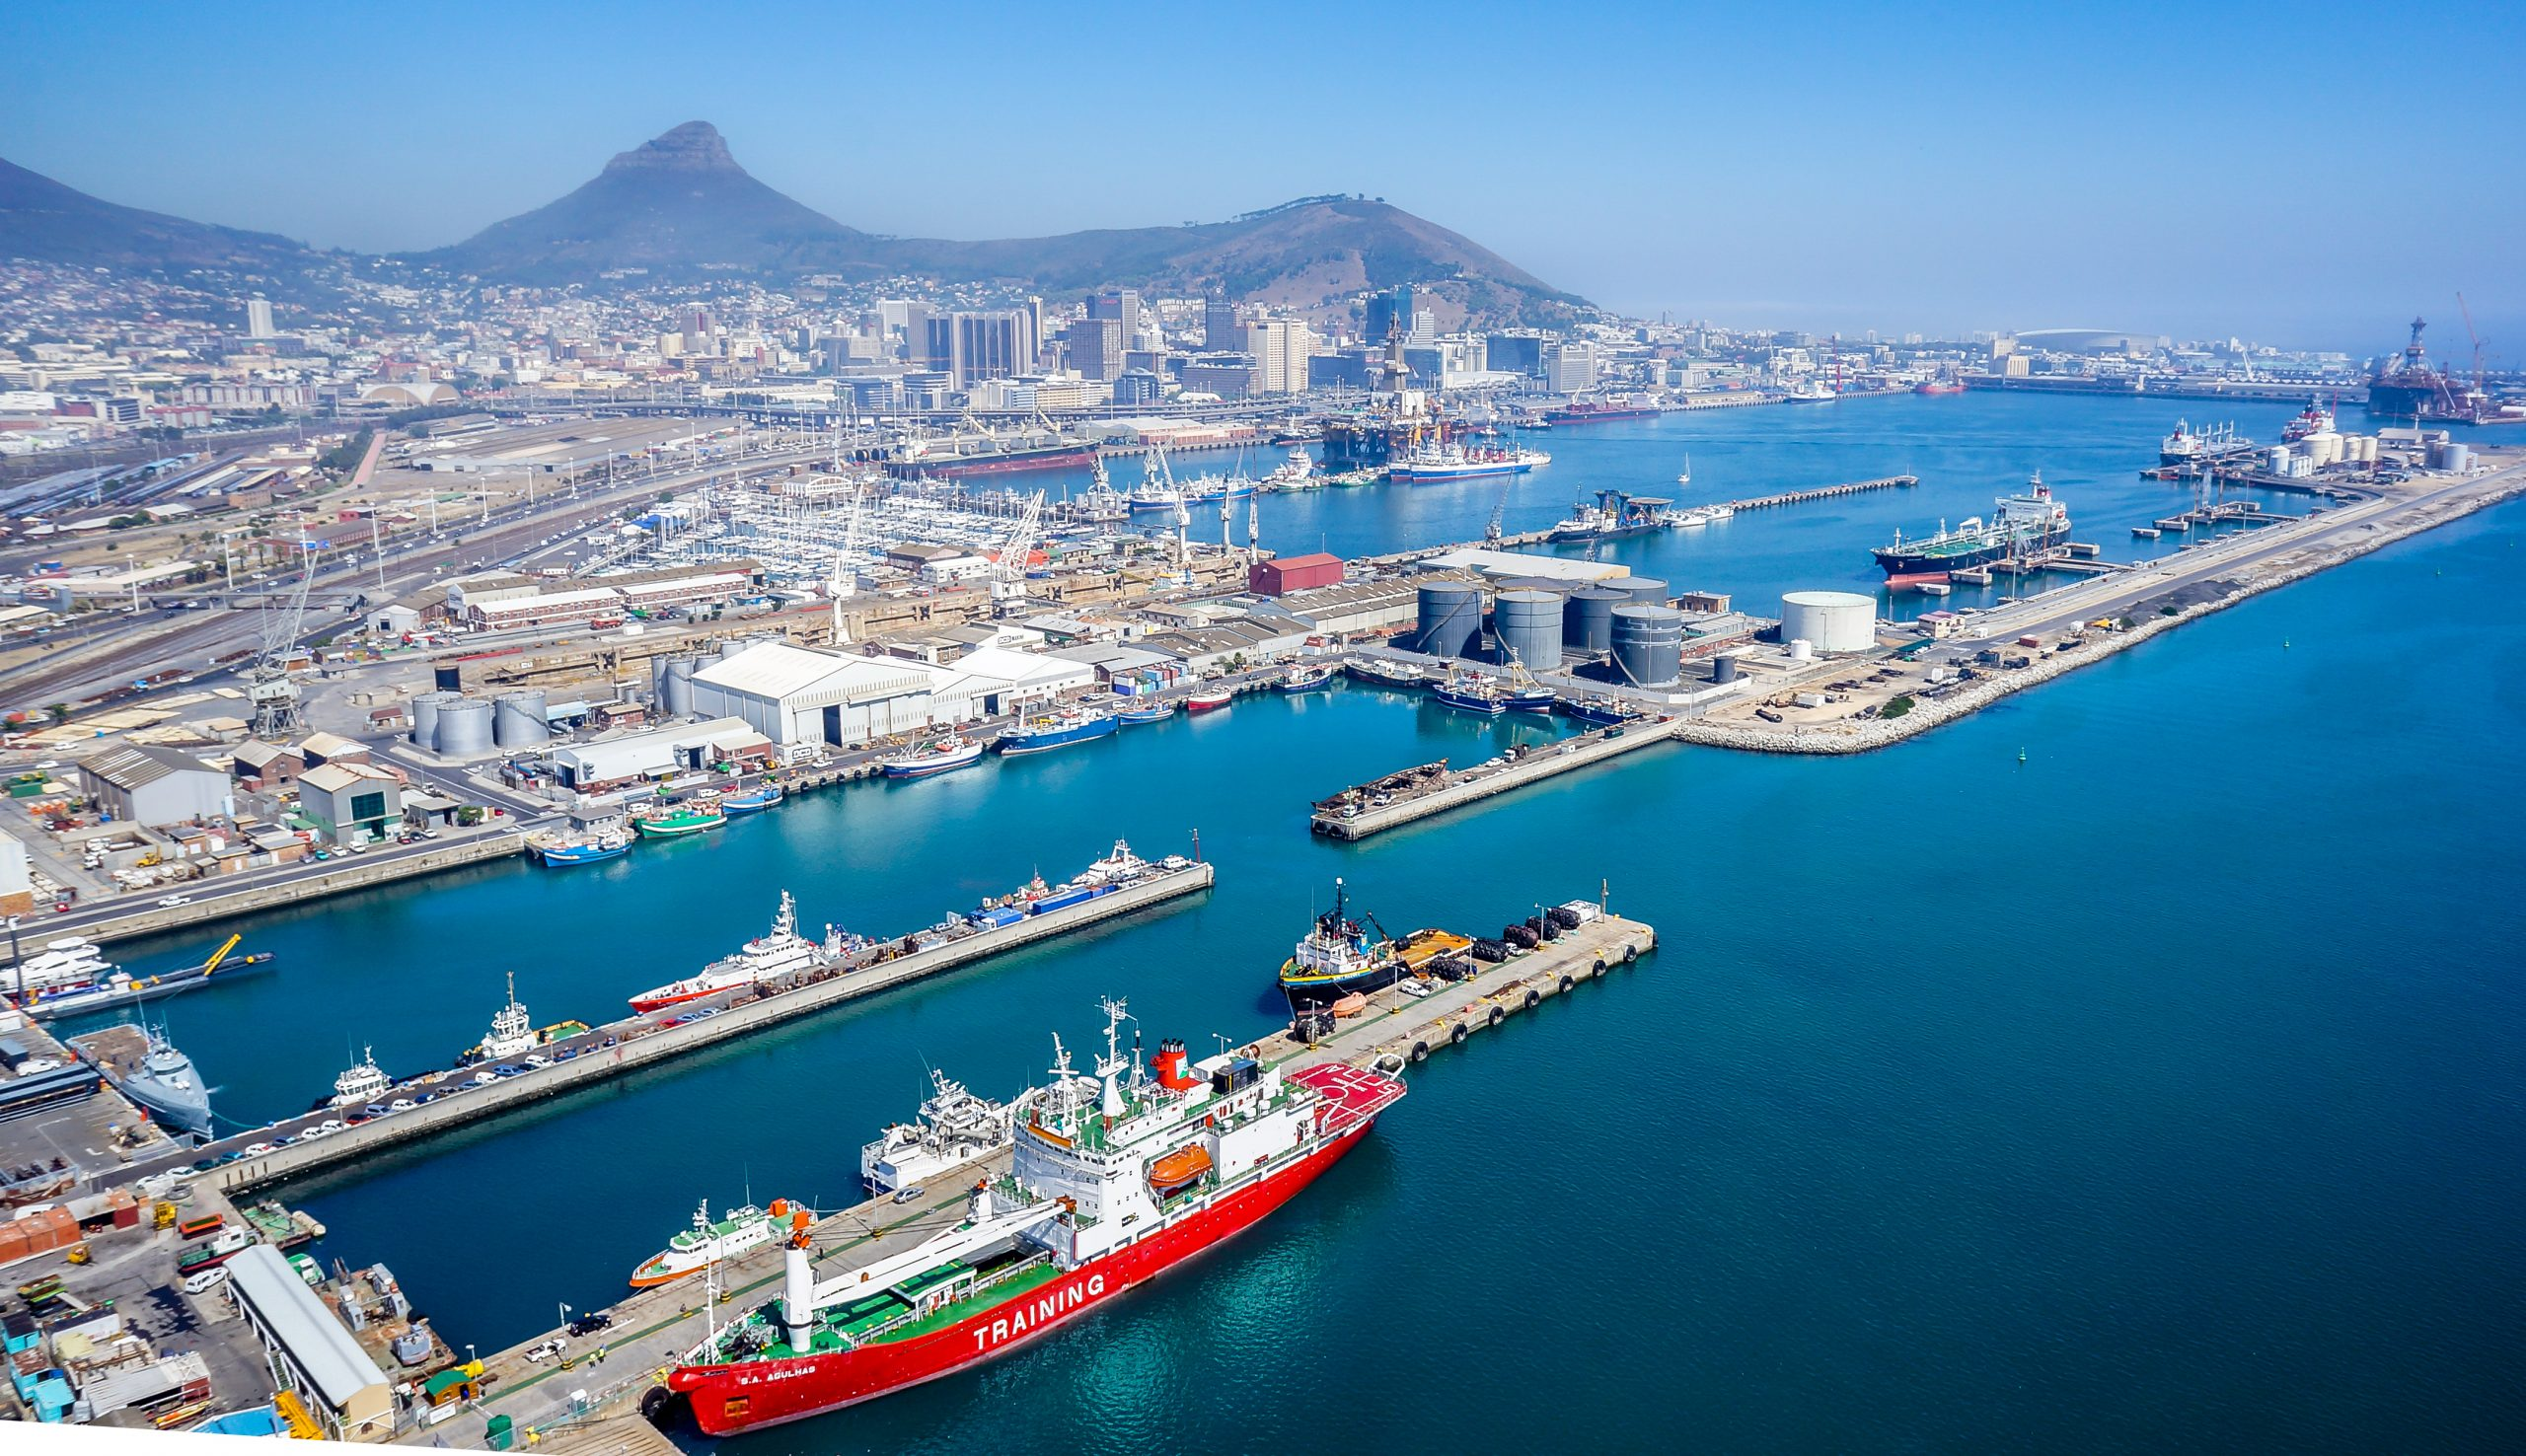 CONTINUING INEFFICIENCIES AT PORT OF CAPE TOWN A RISK FOR AGRICULTURAL EXPORTS